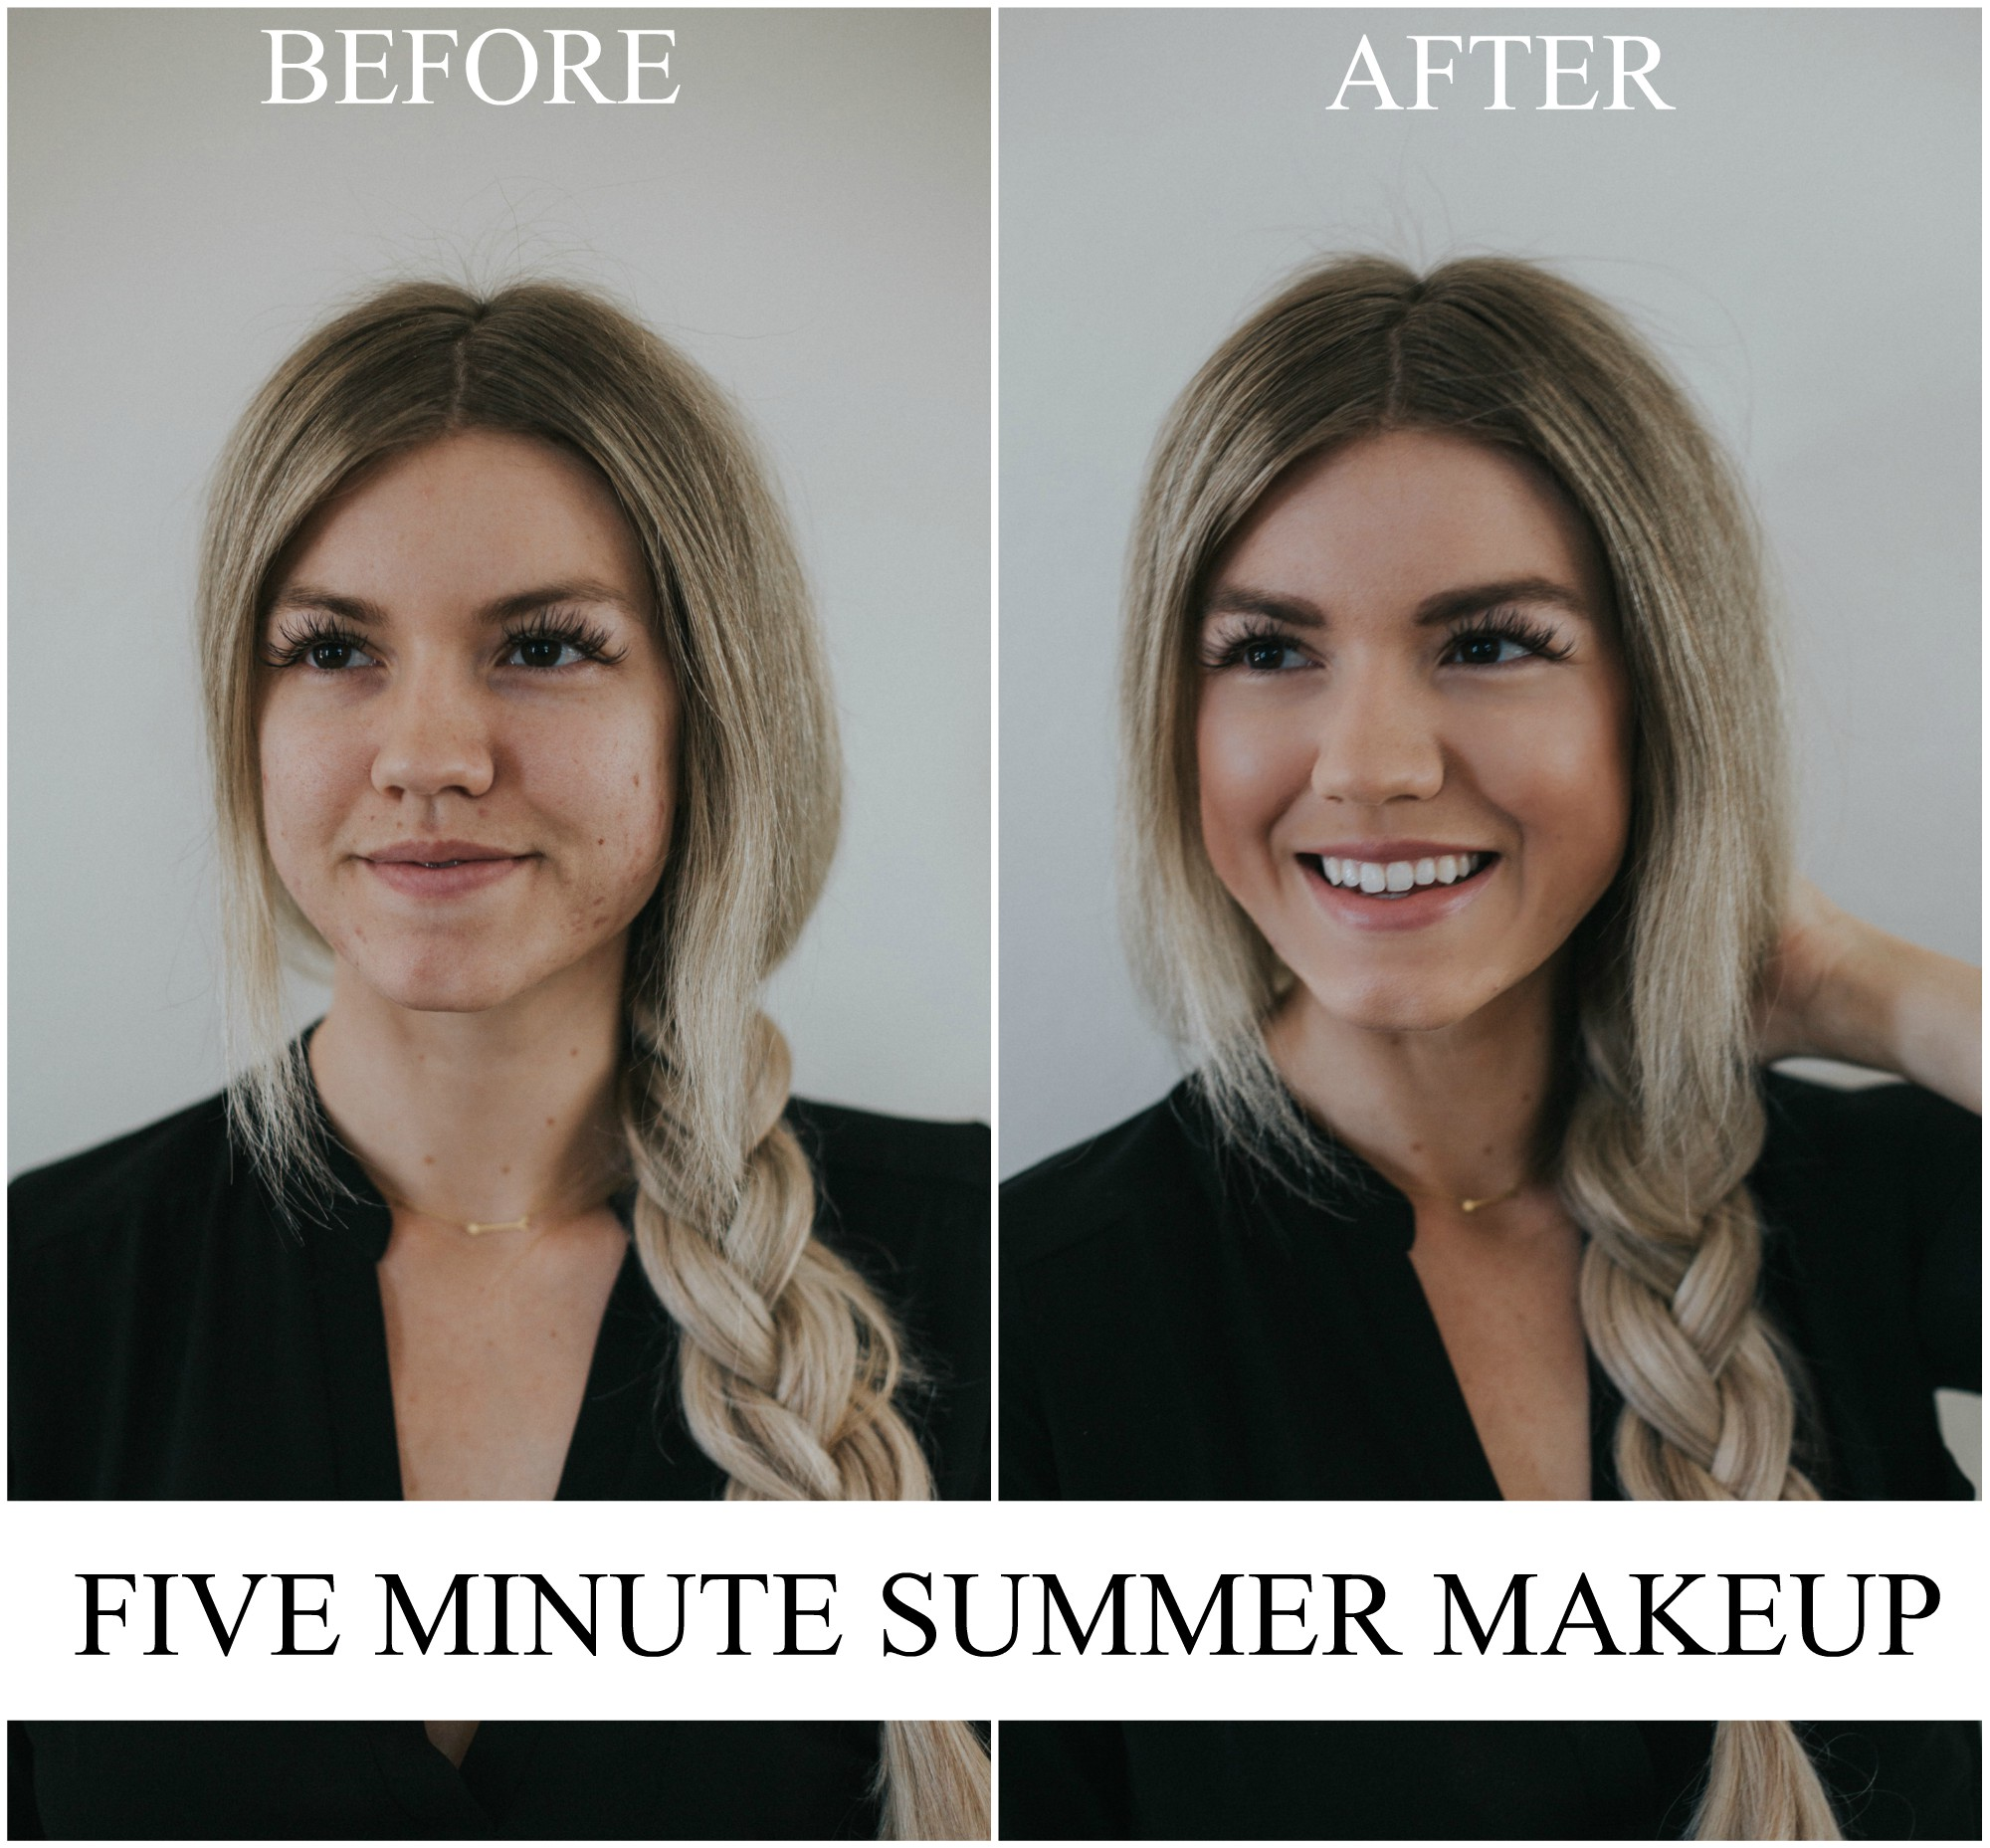 Fashion and beauty blogger Larissa of Living in Color shares her tips on five-minute makeup for moms. See her full tutorial now on the blog.